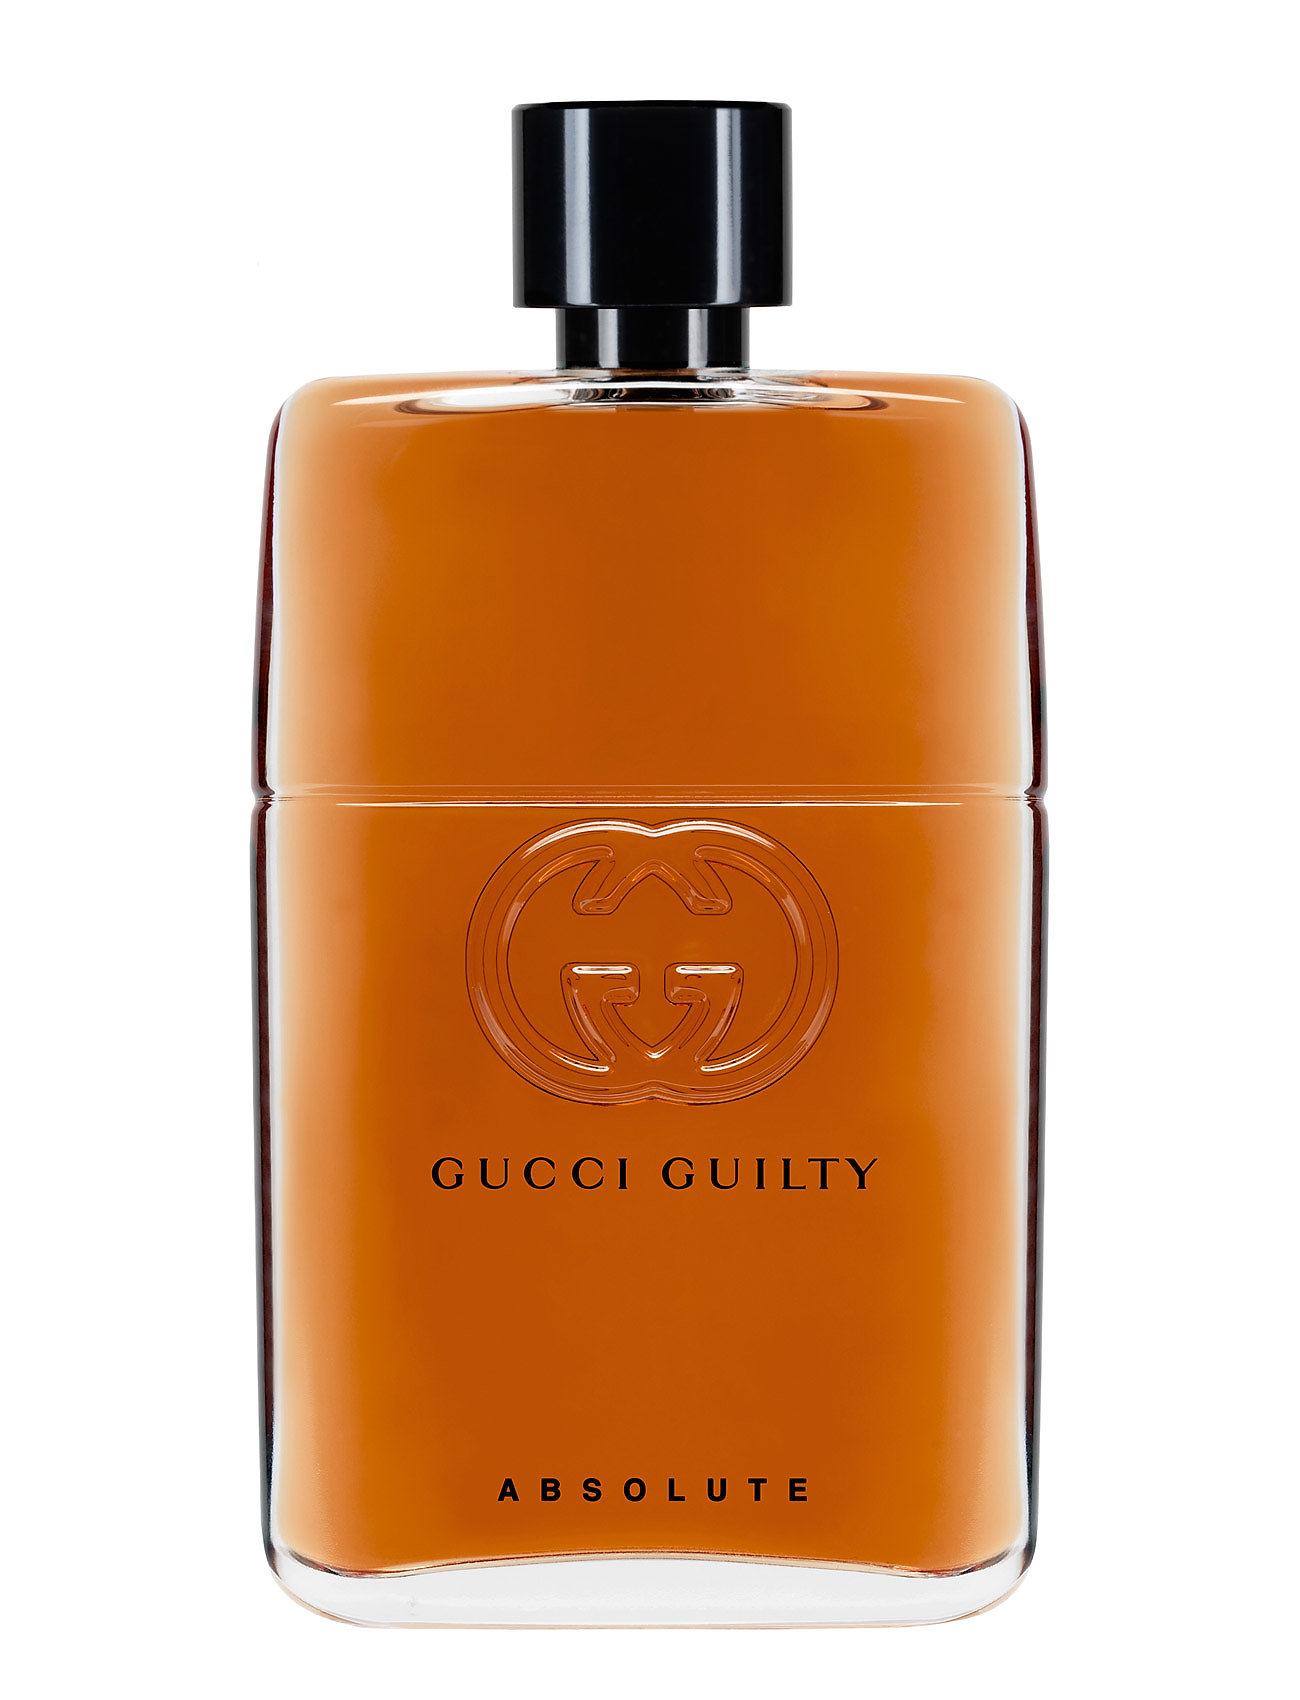 gucci – Gucci guilty ph absolut after shave på boozt.com dk